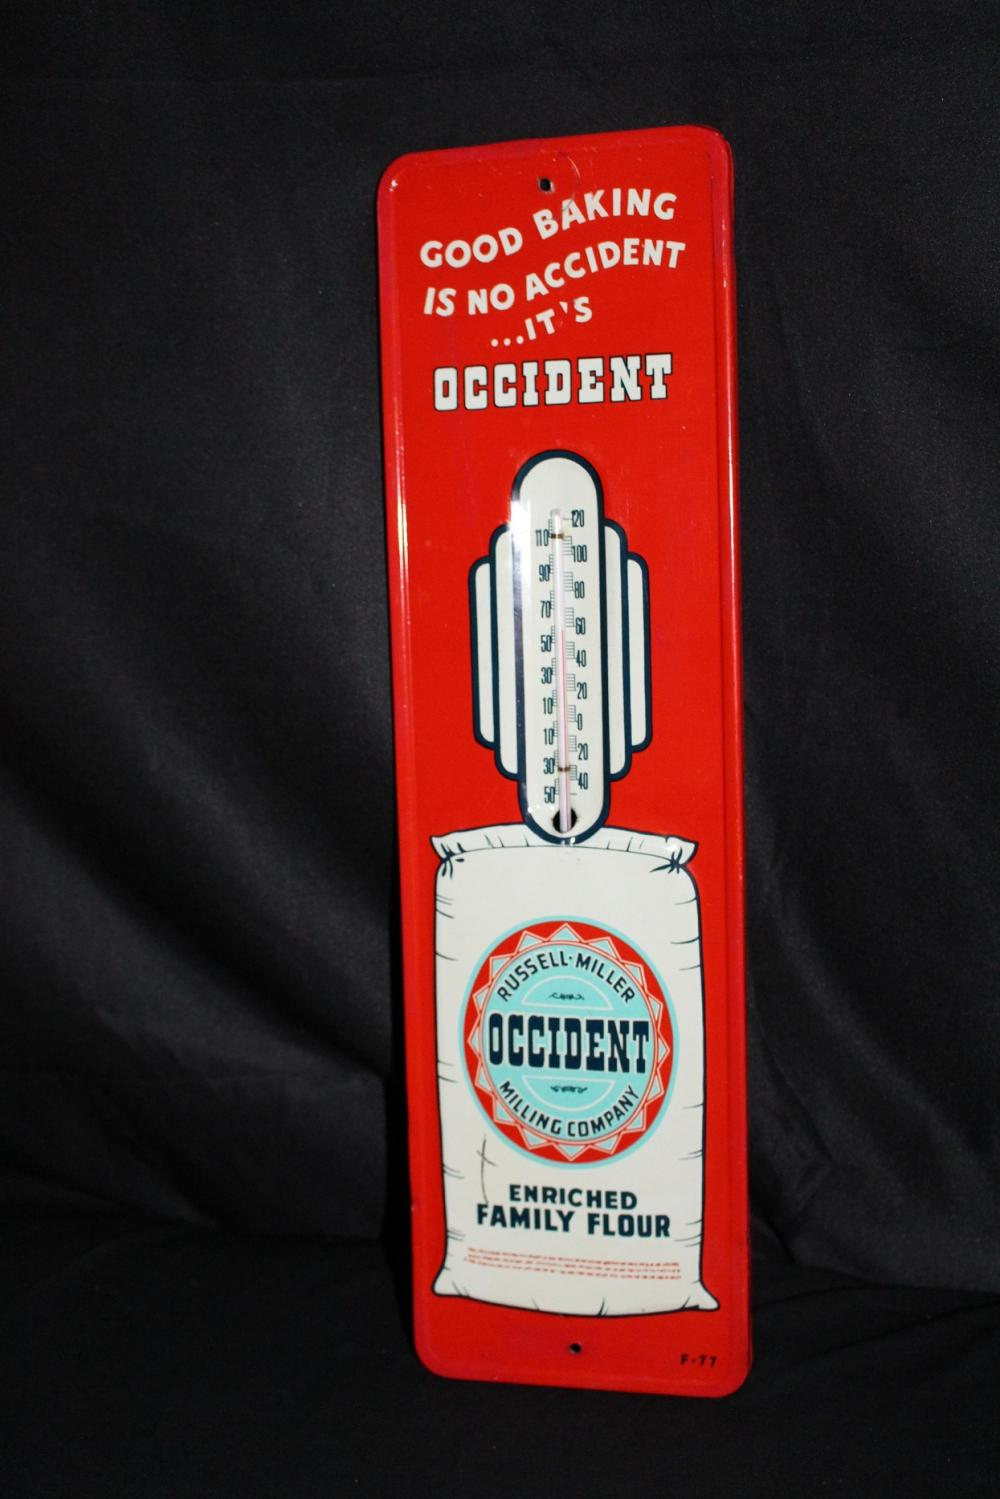 RUSSELL MILLER OCCIDENT FLOUR THERMOMETER SIGN